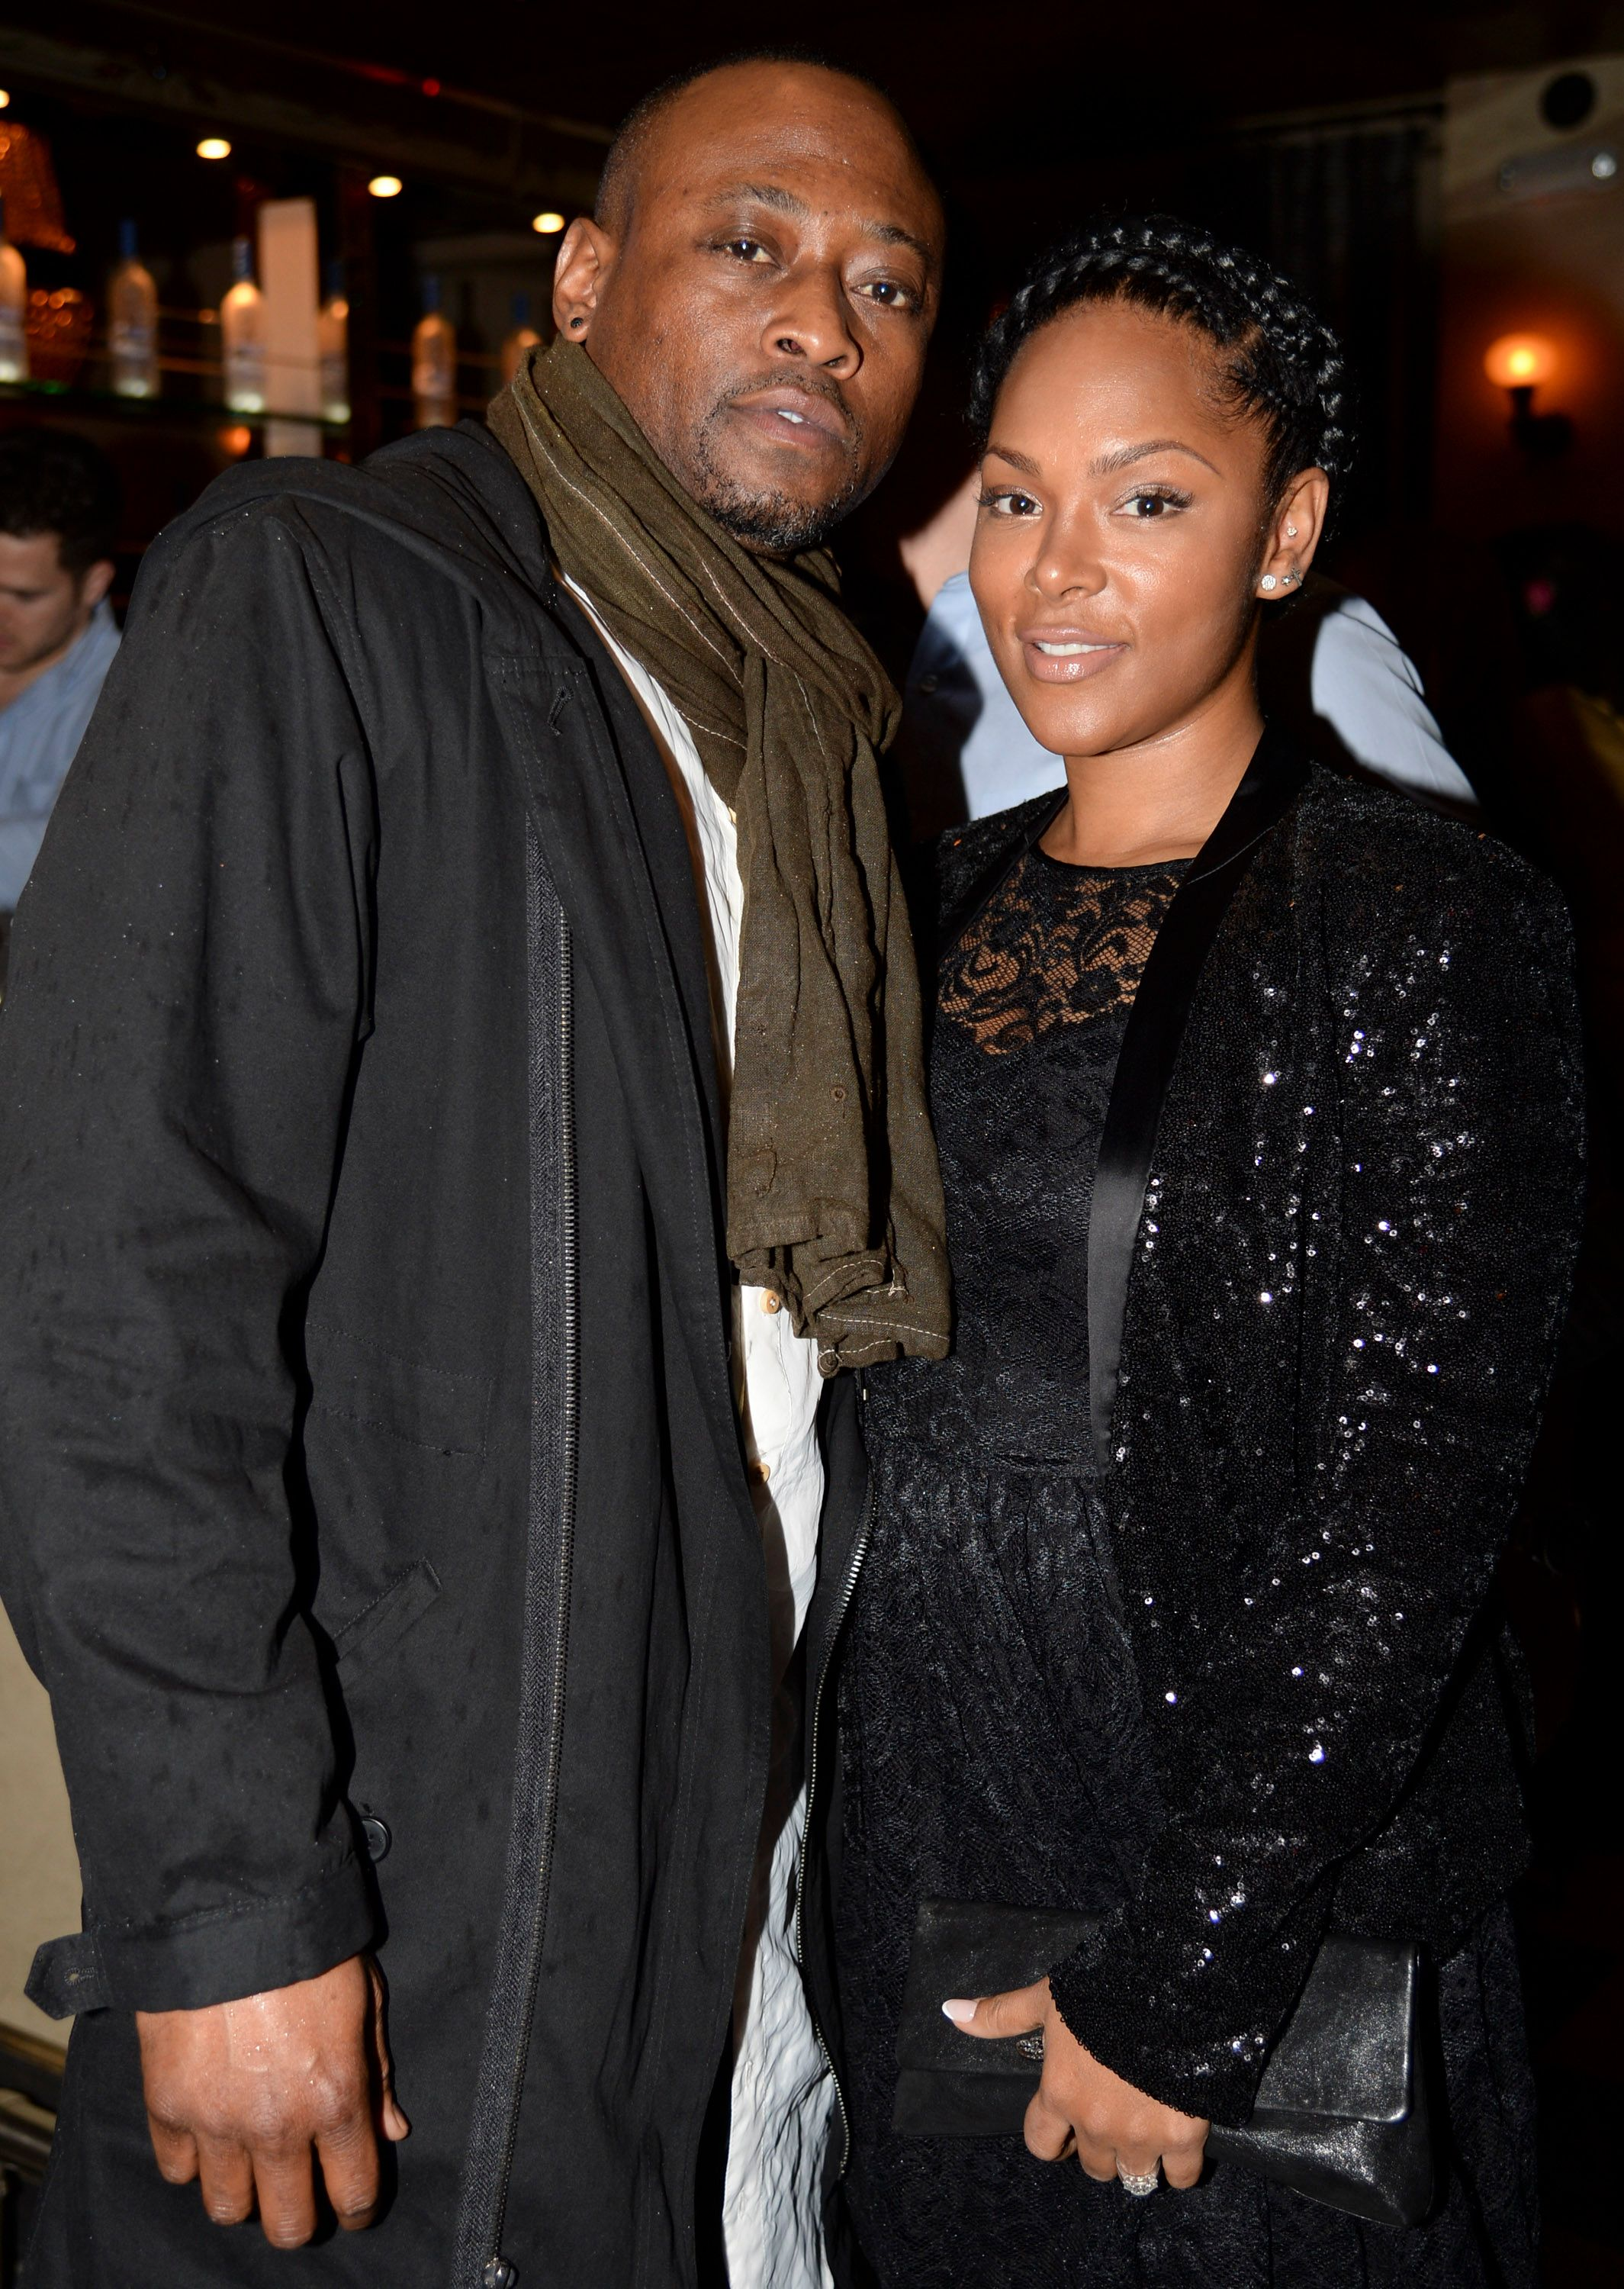 Omar Epps and Keisha Epps attend Anonymous Content's Pre-Golden Globes Party at RivaBella on January 10, 2015 in West Hollywood, California. | Source: Getty Images